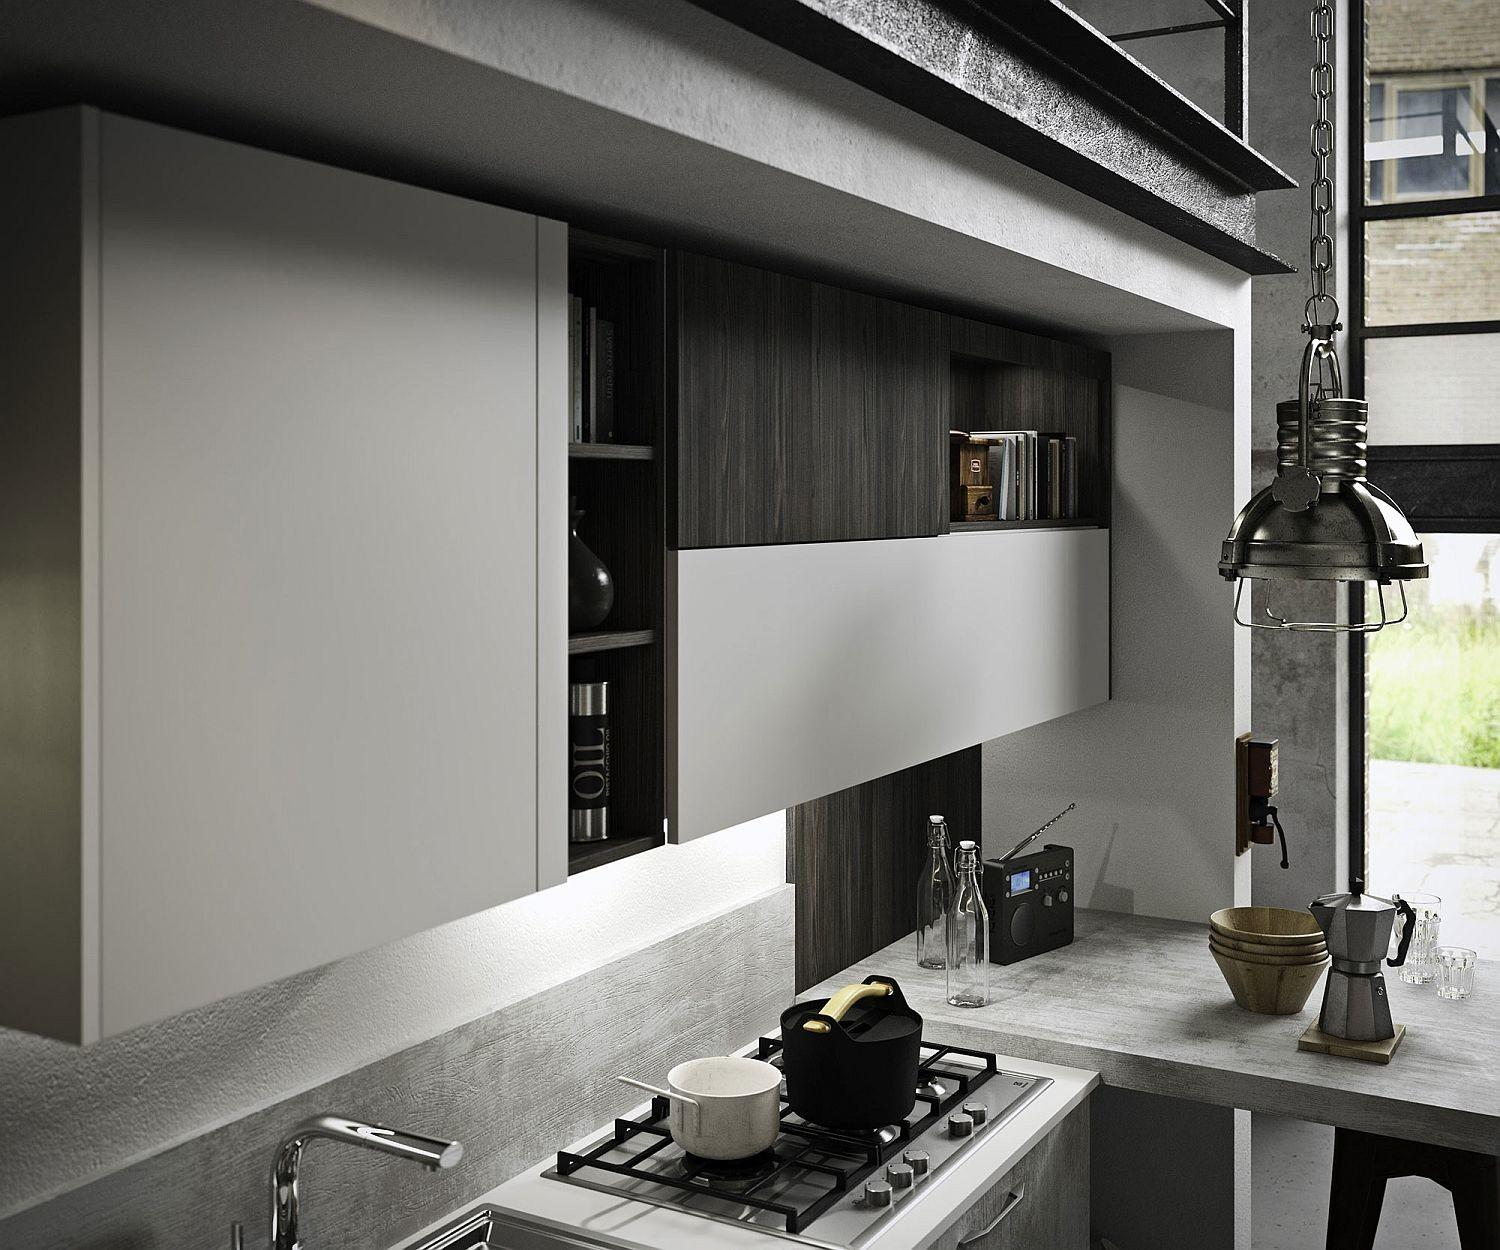 Refined Reliable Edgy Fun Adaptable Kitchen